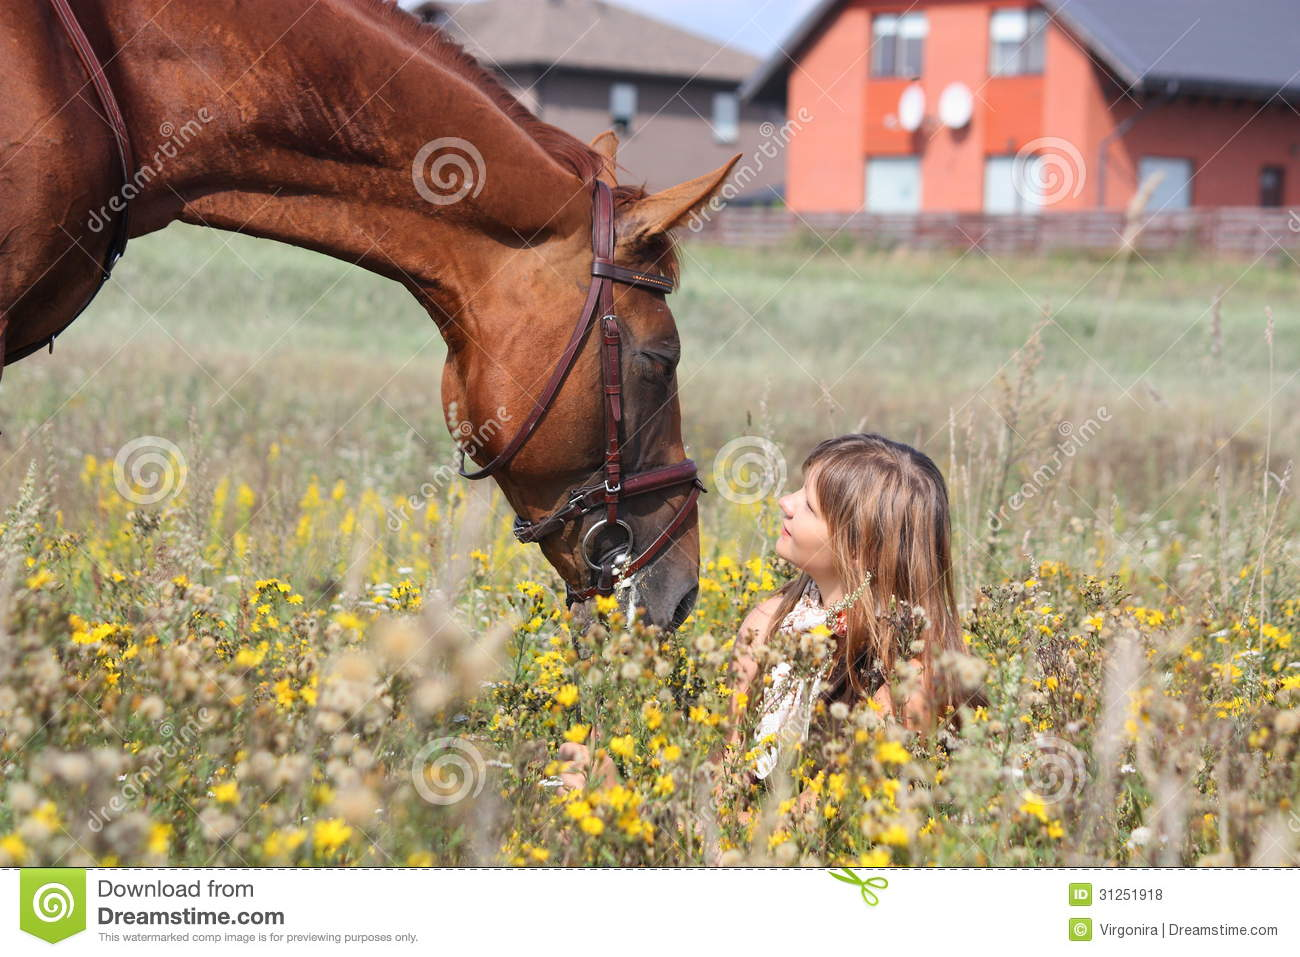 Girl sitting on the ground and chestnut horse standing near